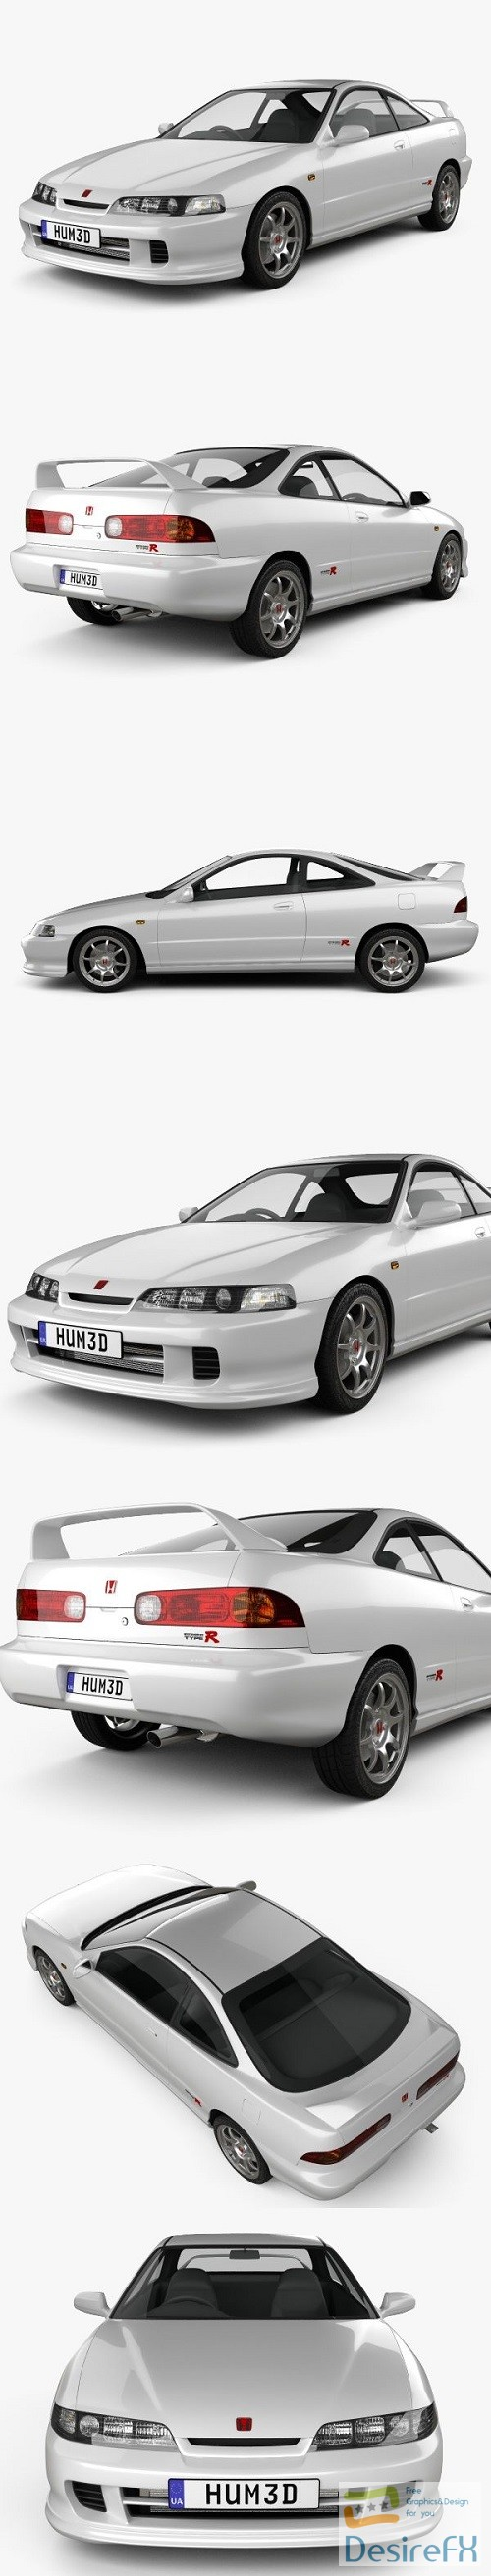 3d-models - Honda Integra Type-R coupe 1995 3D model